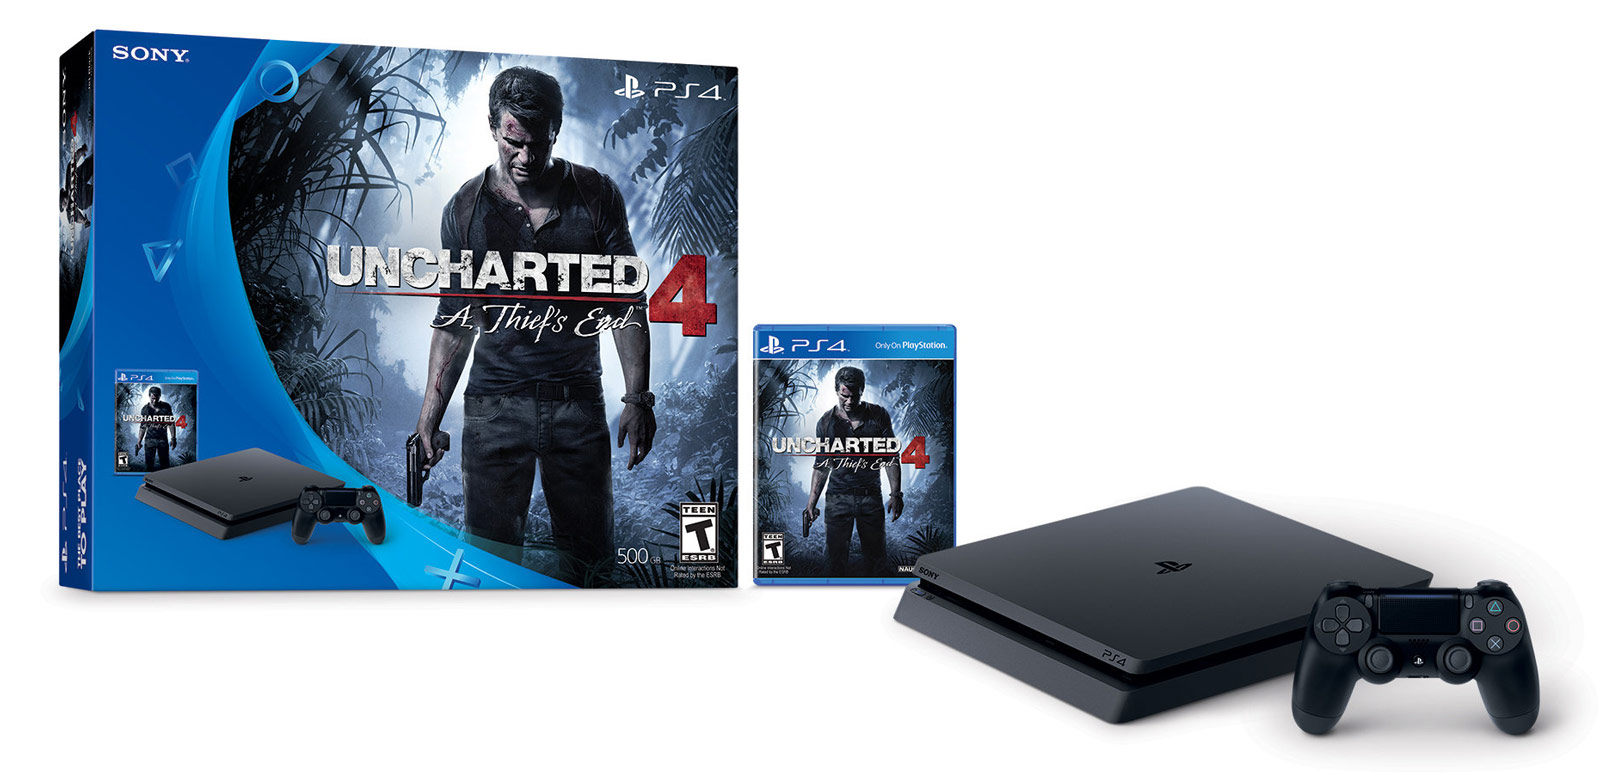 uncharted4ps4slim